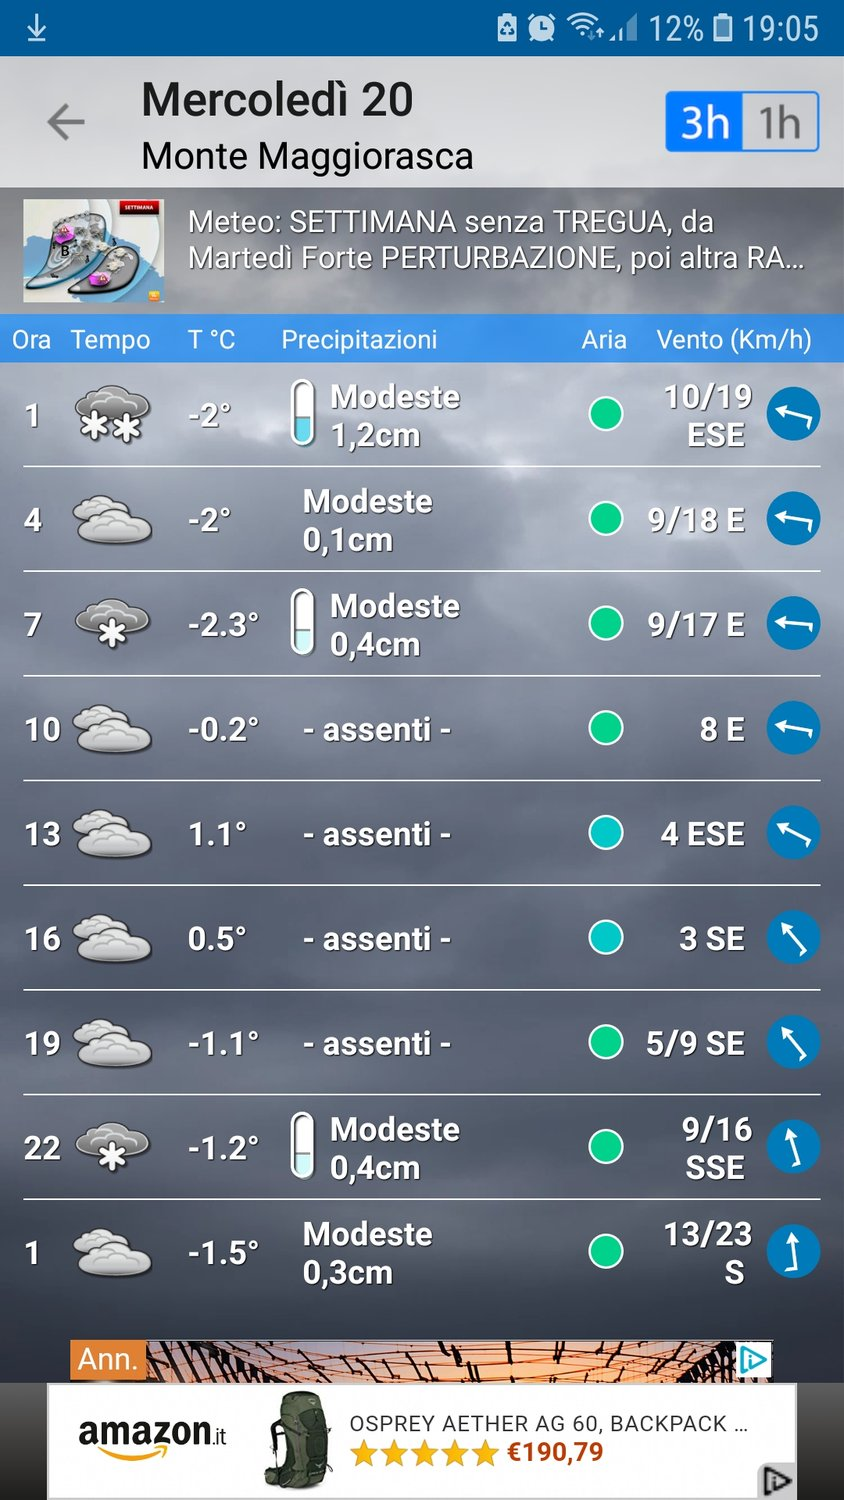 Screenshot_20191118-190505_the Weather.jpg